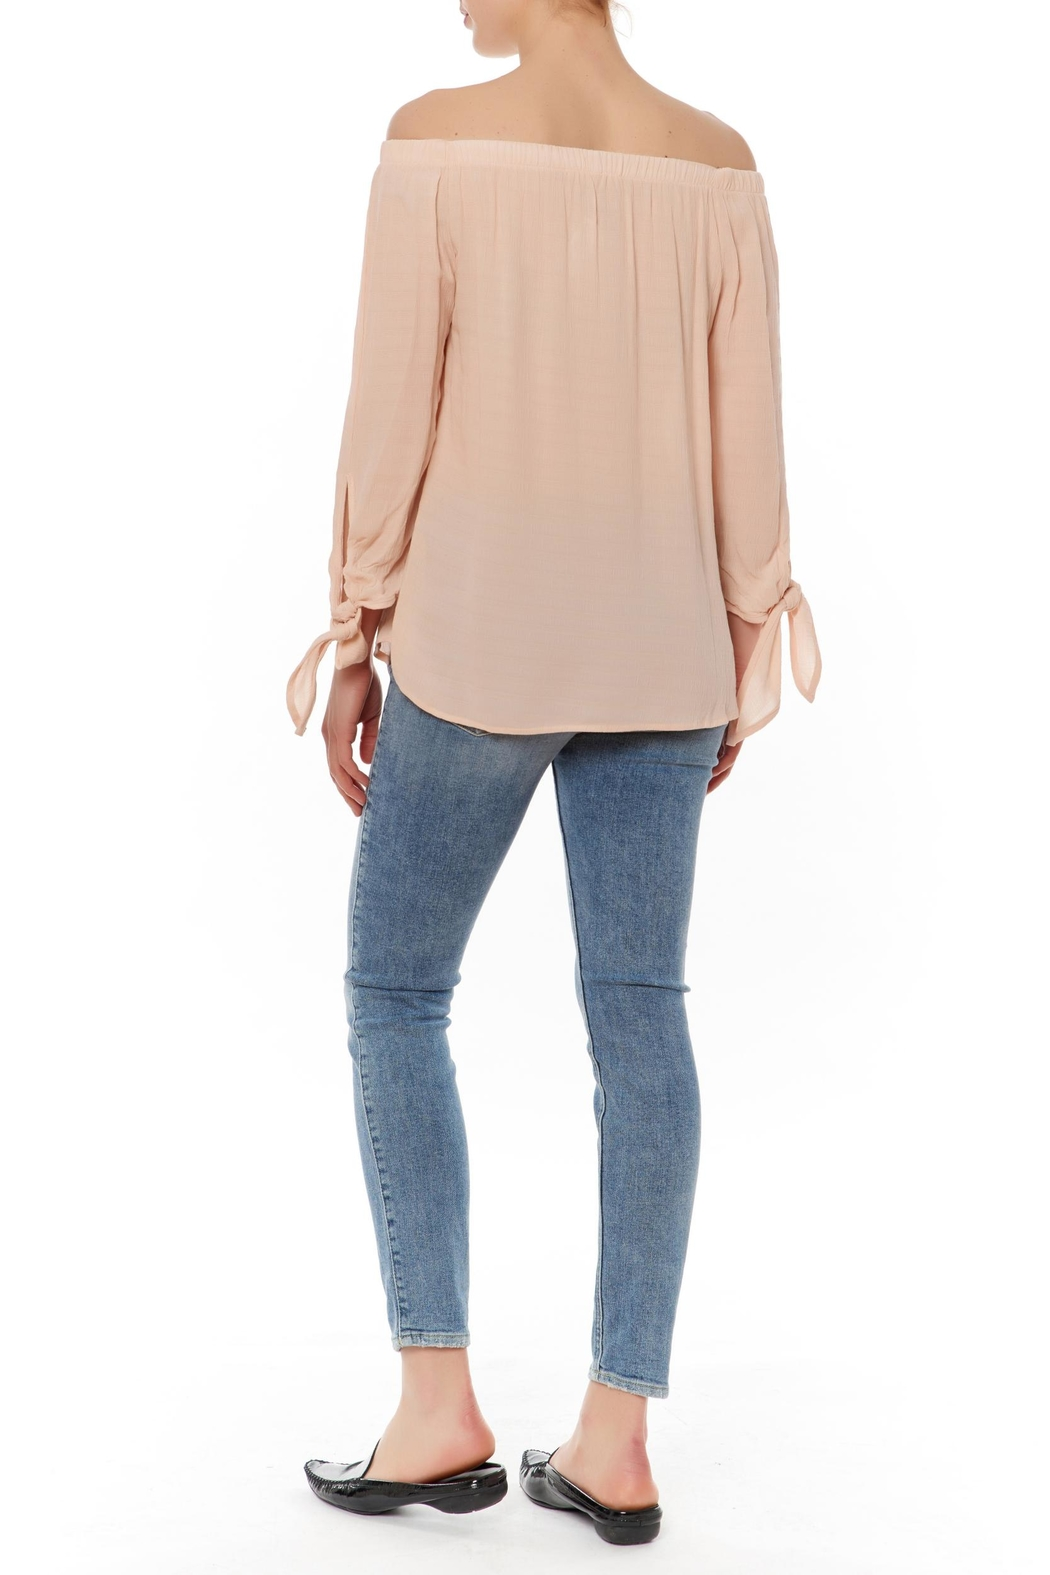 Le Lis Off Shoulder Tie Top - Front Full Image